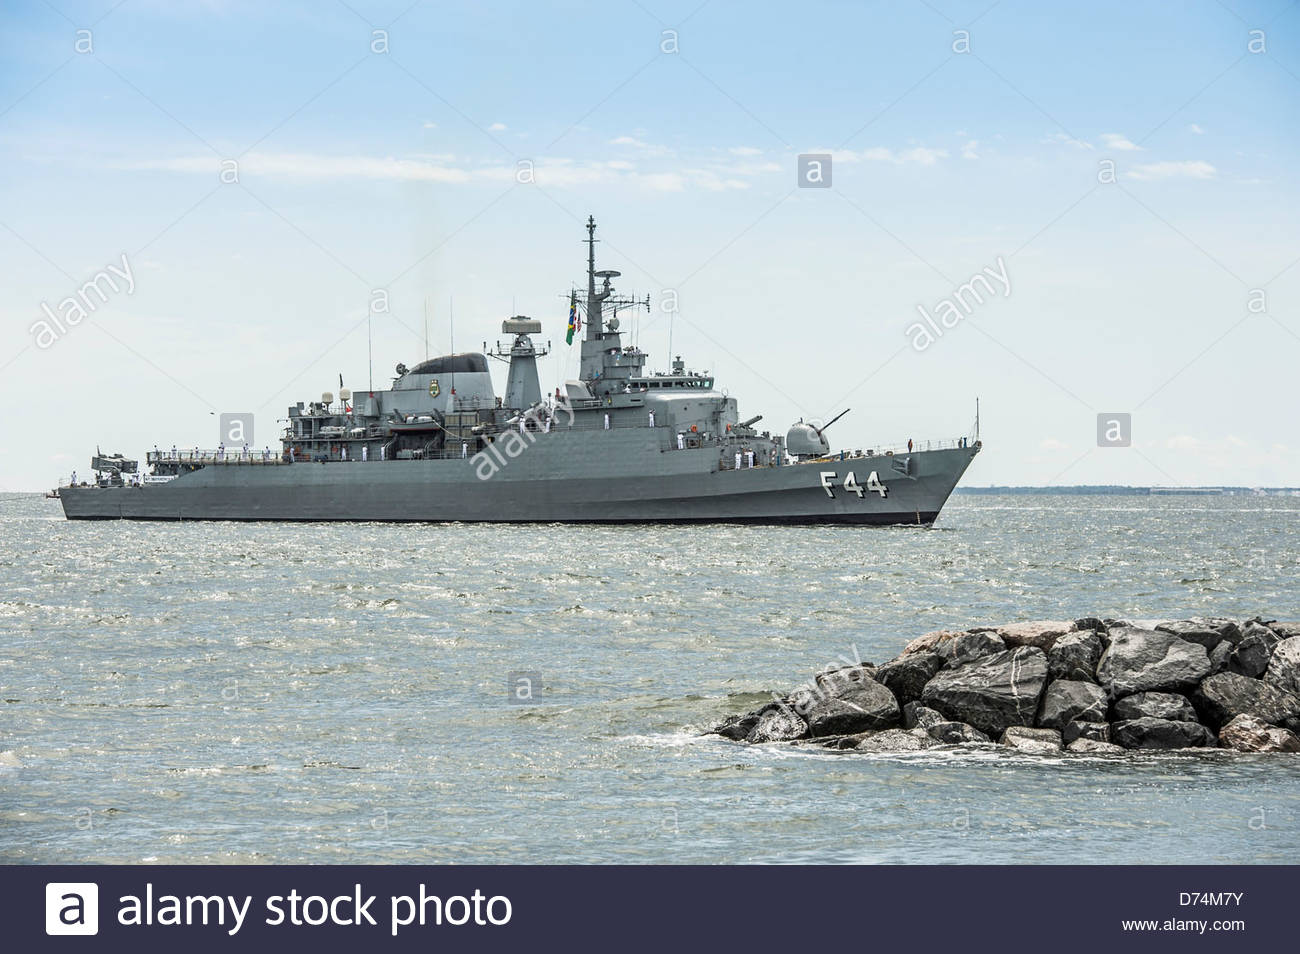 Brazilian Naval Frigate Independencia F44 entering Hampton Roads Harbor for OpSail 2012 on June 6, 2012 - Stock Image